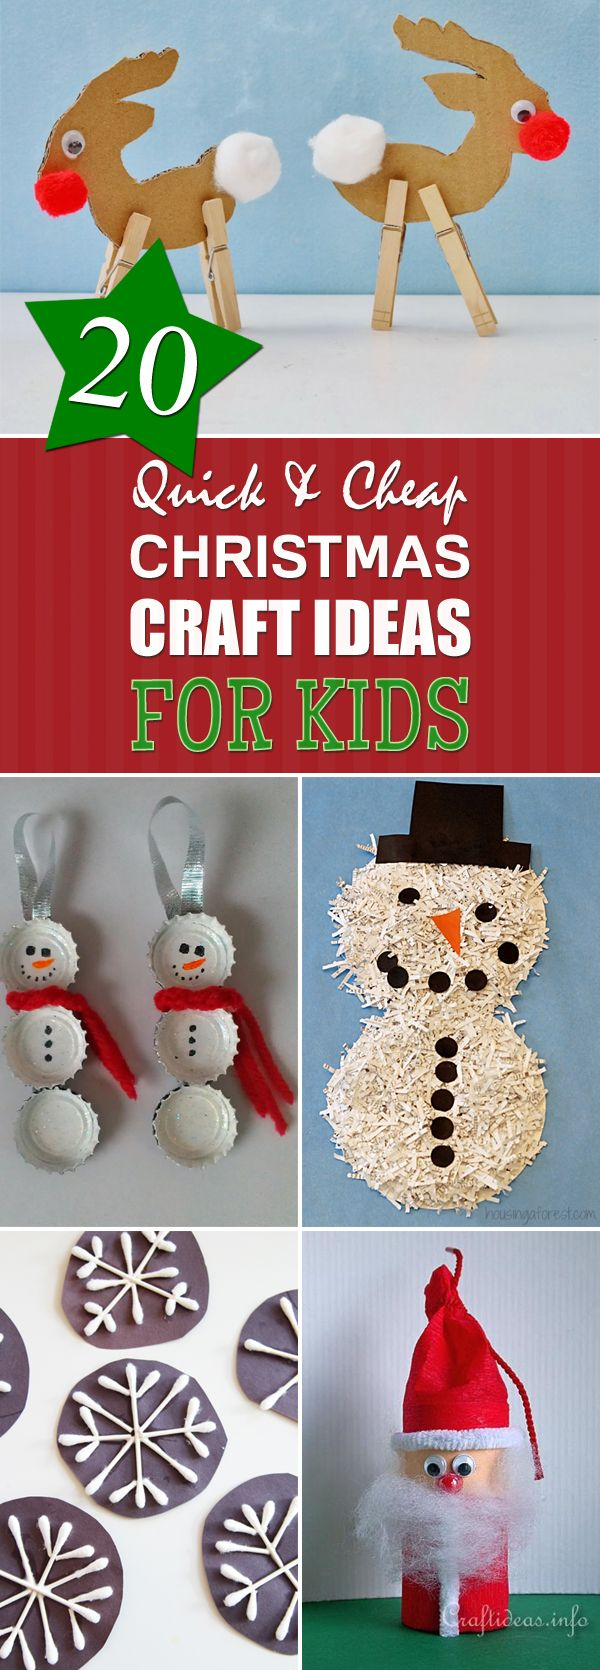 Best 25+ Cheap christmas crafts ideas on Pinterest | Cheap ...